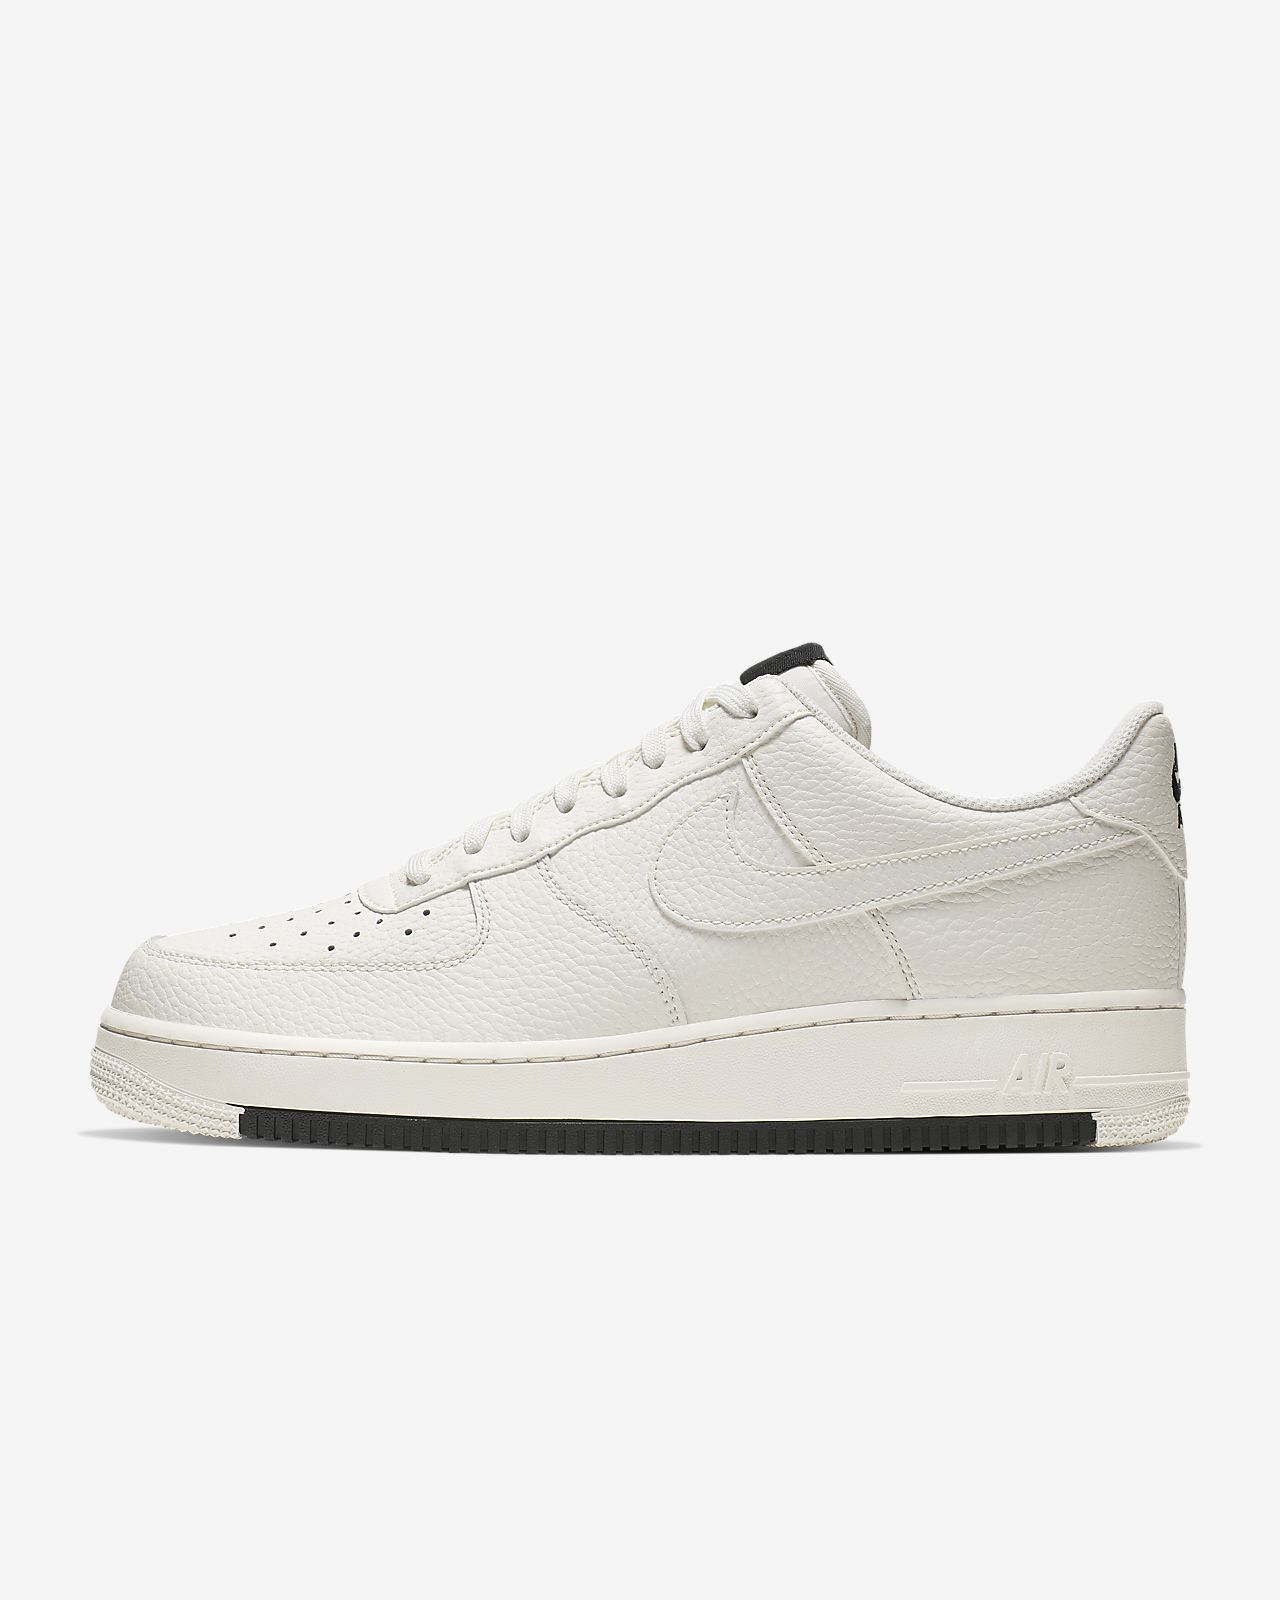 Chaussure Nike Air Force 1 '07 1 pour Homme